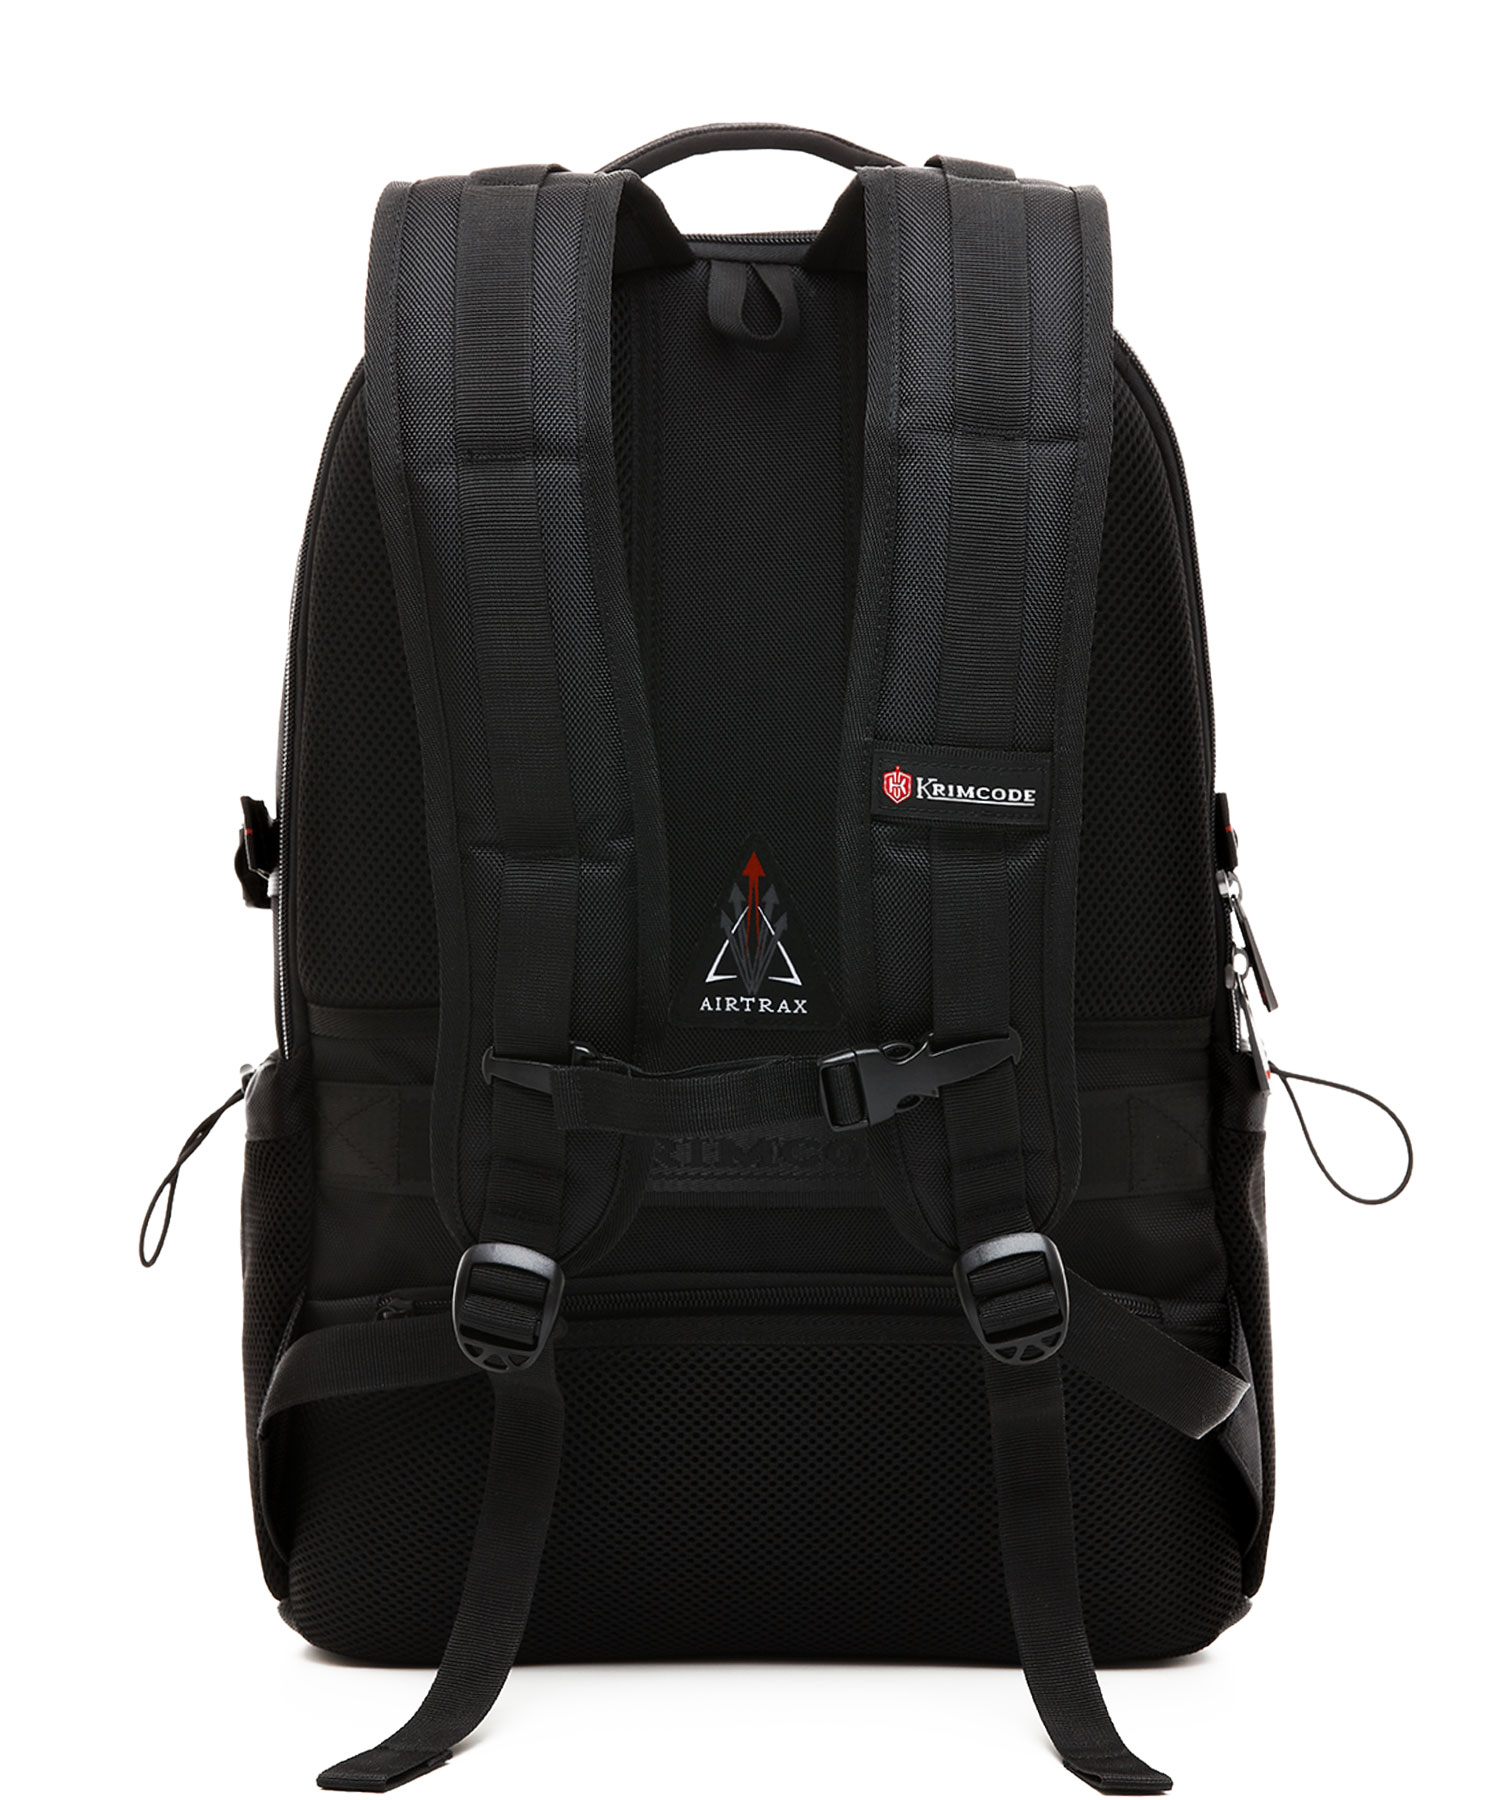 krimcode backpack back view